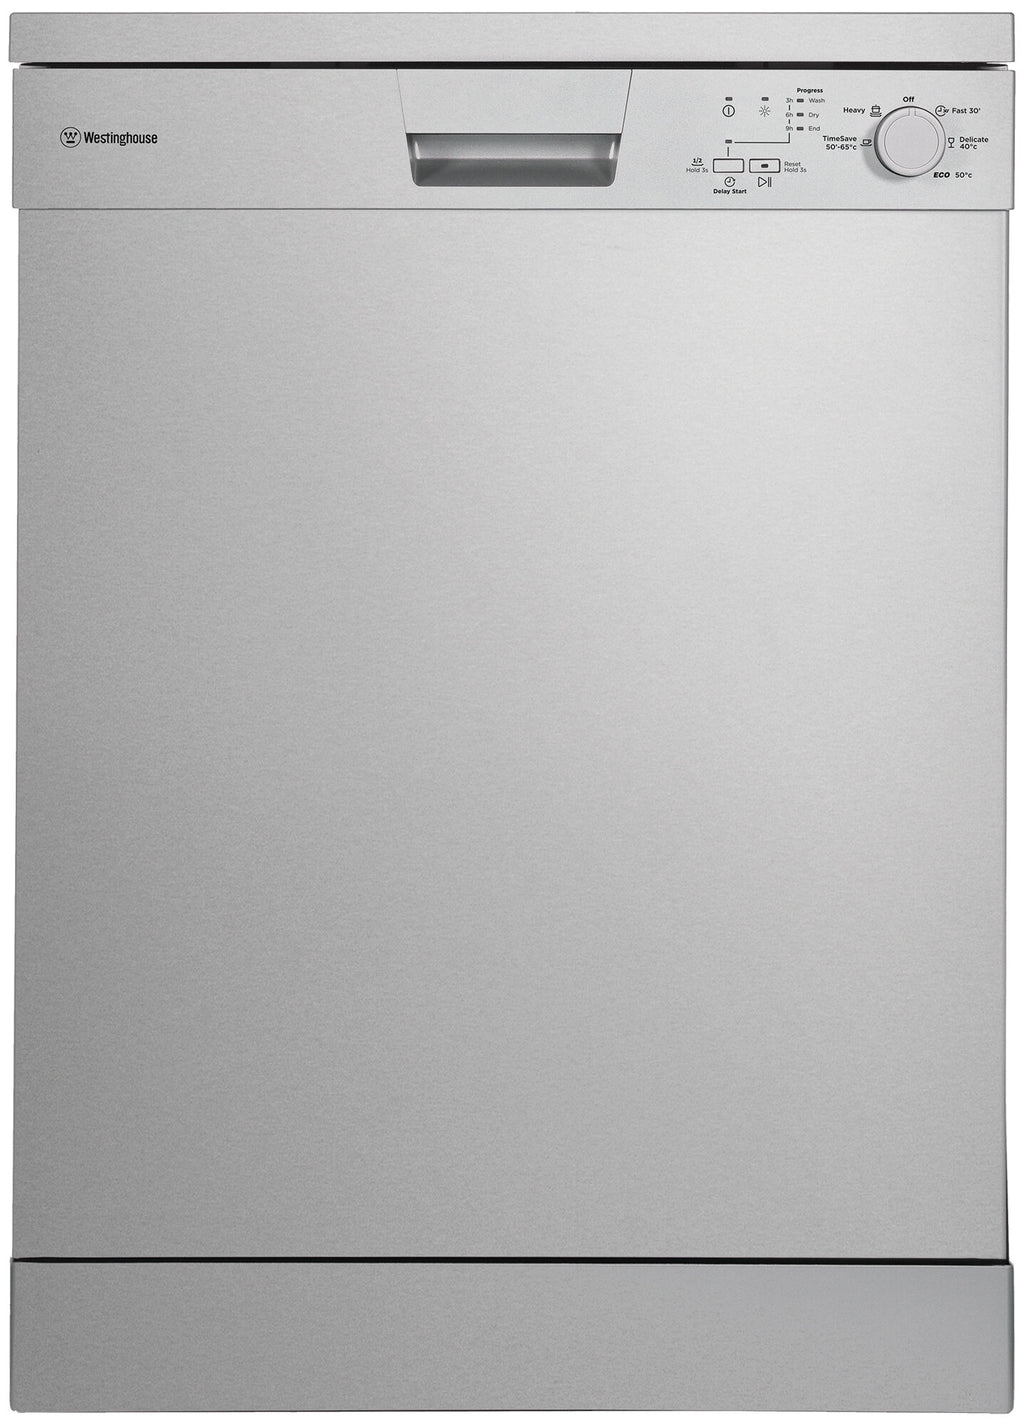 Westighouse Freestanding Dishwasher 13 p/s - Brisbane Home Appliances